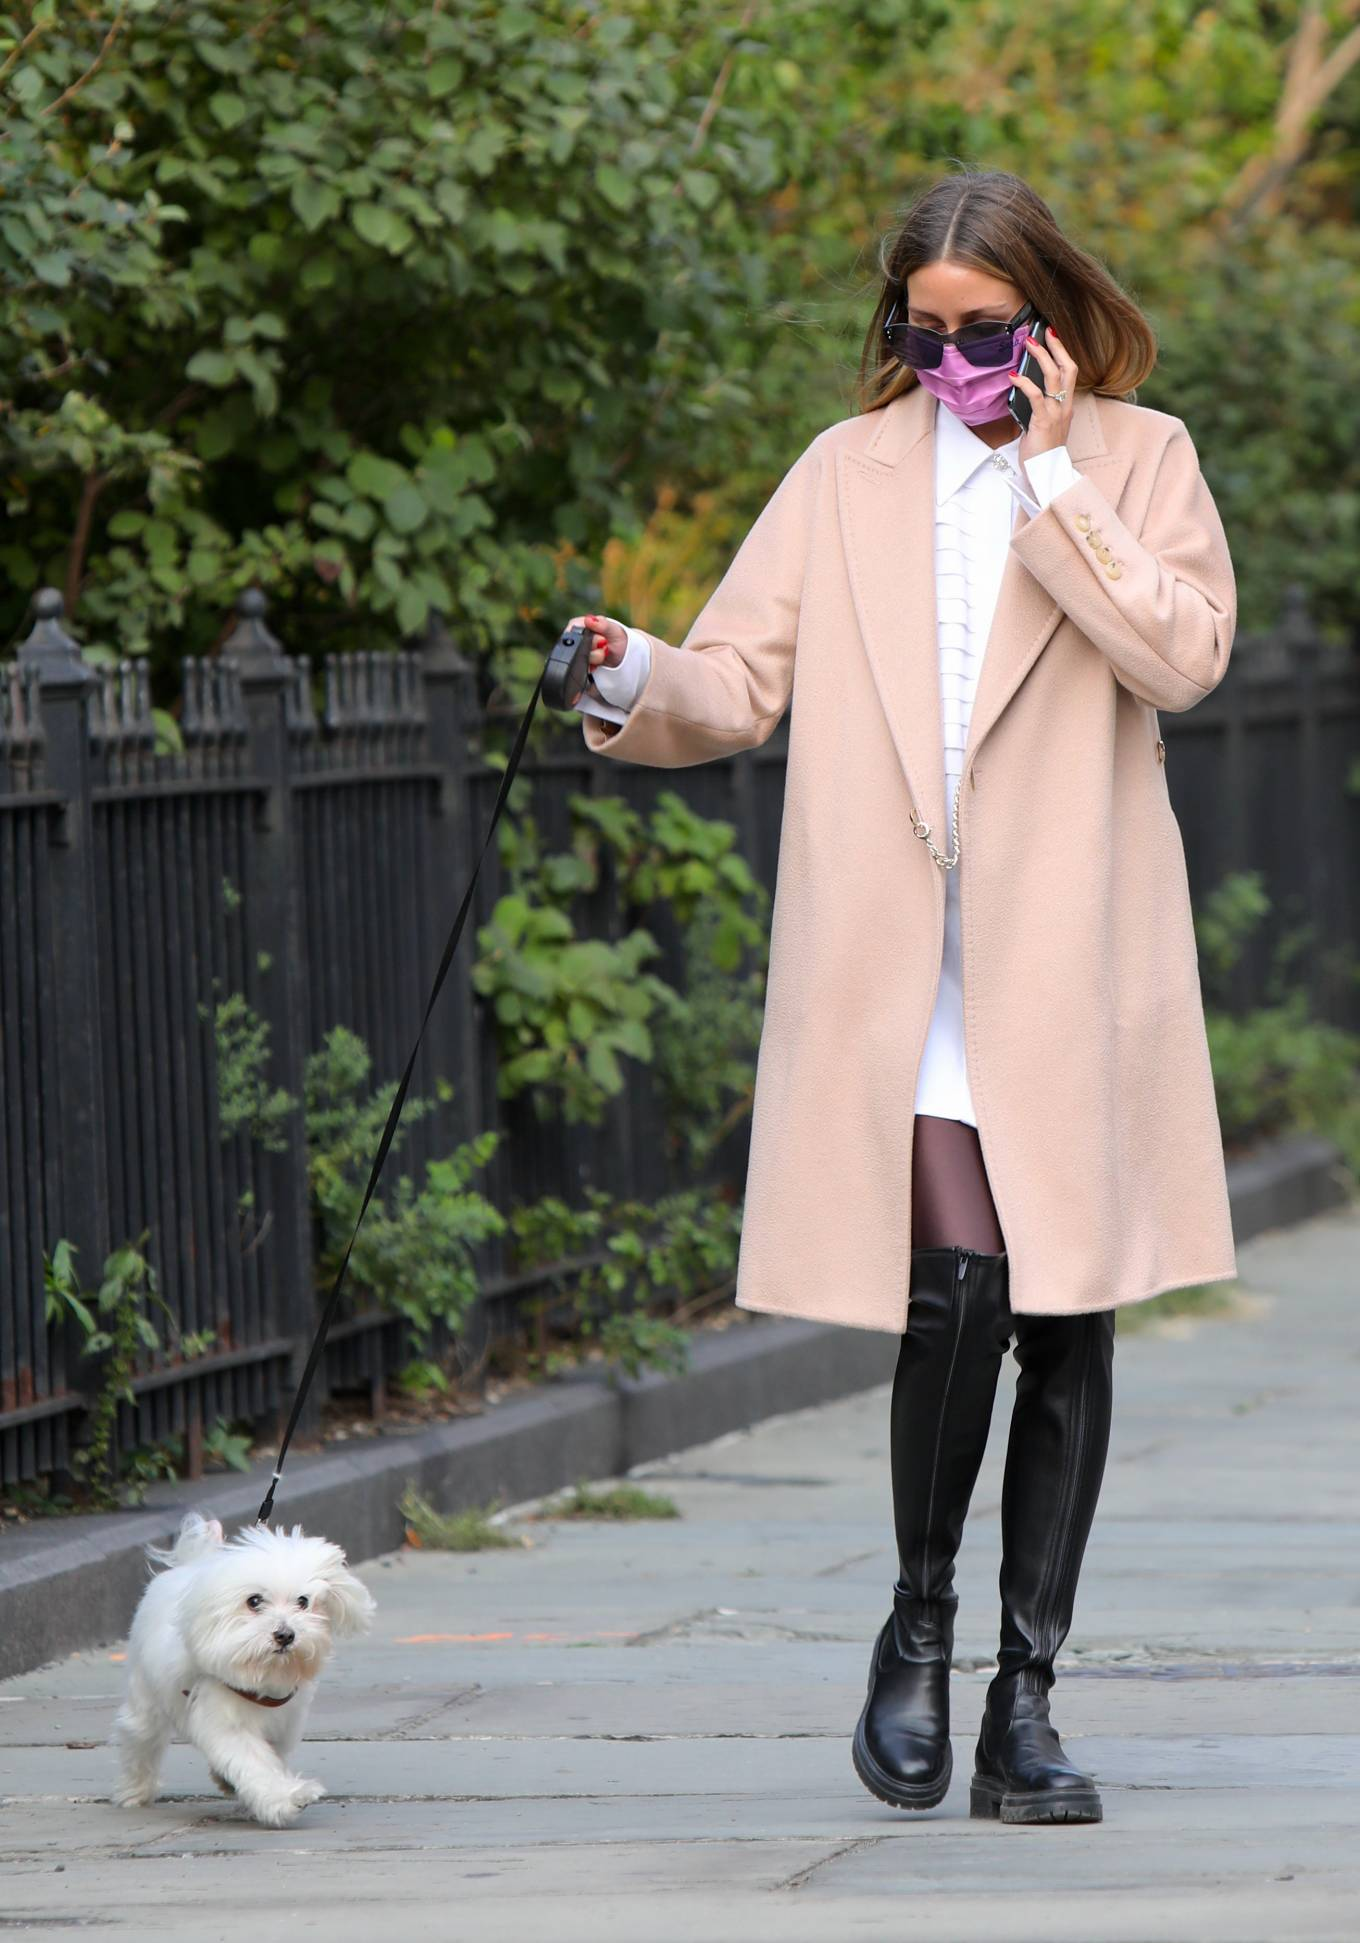 Olivia Palermo 2020 : Olivia Palermo – Wearing a white short dress under a coat while out for a walk in Manhattan-11